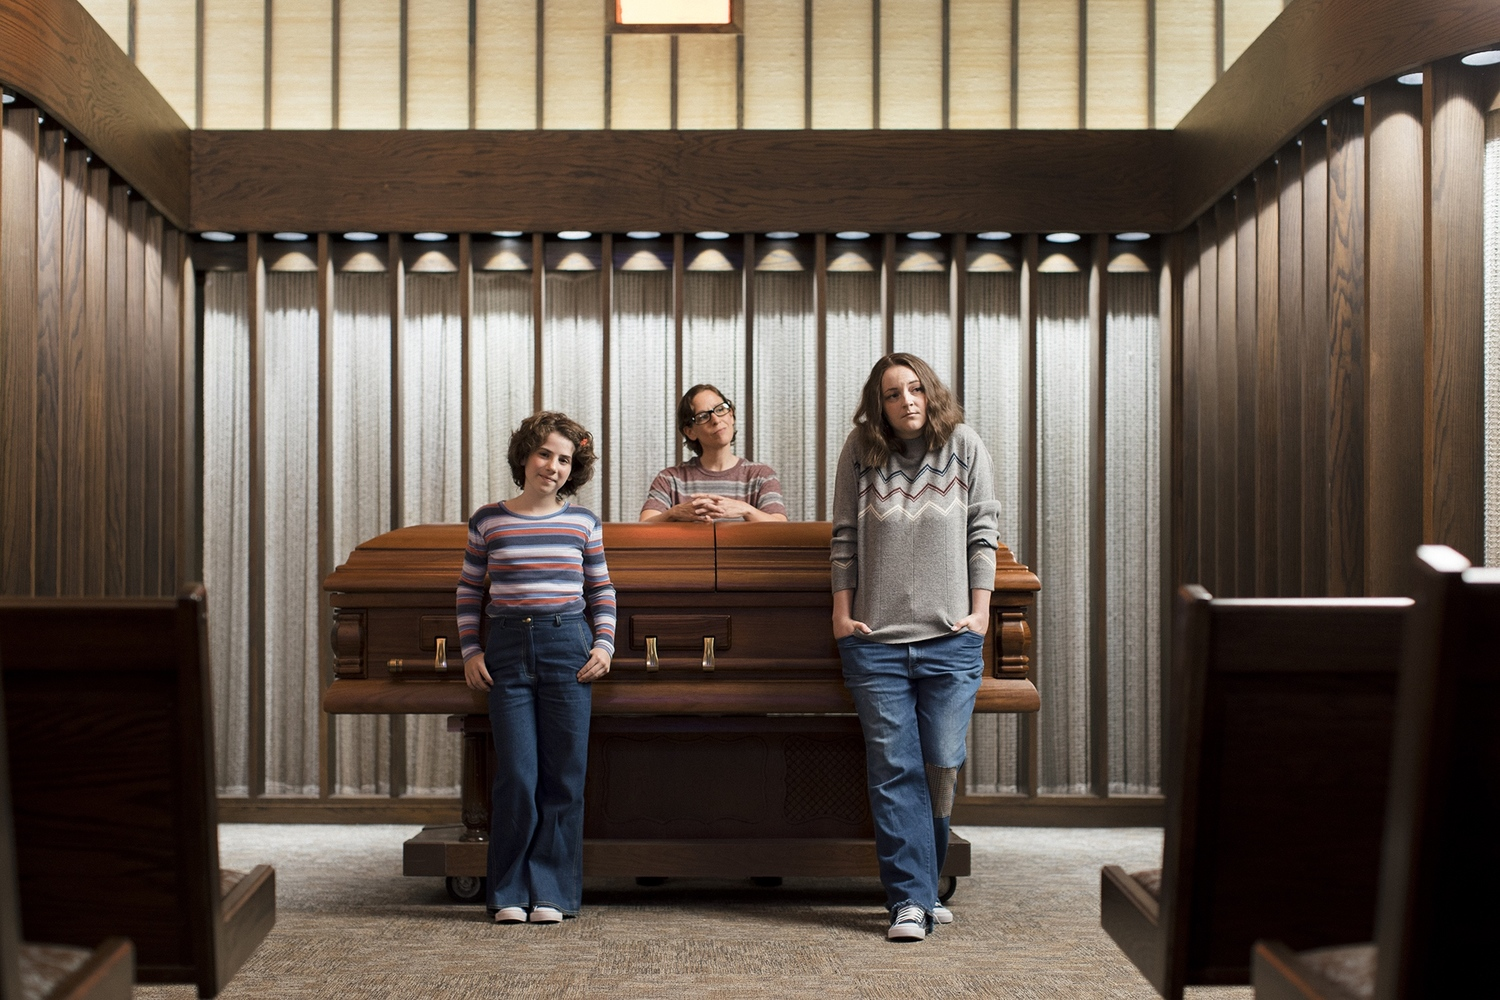 BWW Review: FUN HOME at Omaha Community Playhouse is Artistry